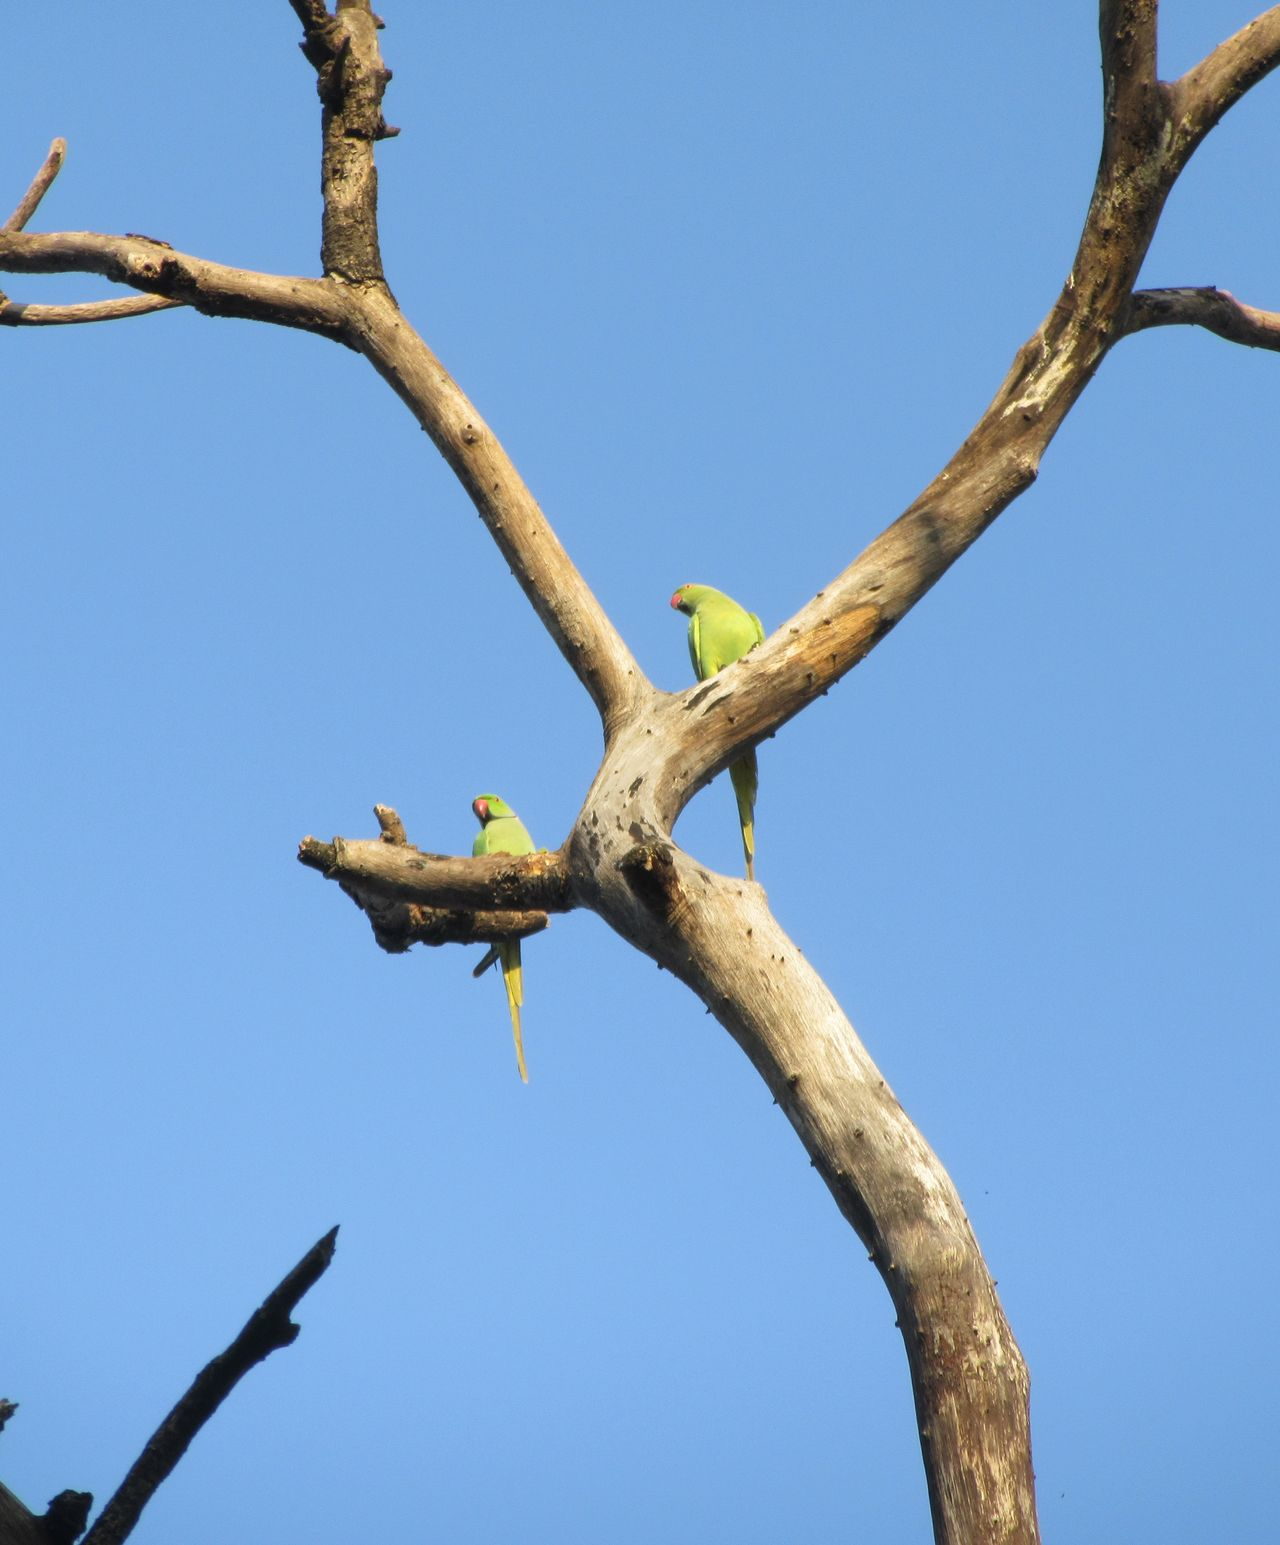 Animal Wildlife Animals In The Wild Low Angle View Sky Day Outdoors Branch Nature Perching Nature On Your Doorstep Bird Photography World Around Me Fine Art Photography Birds Wildlife EyeEm Nature Lover Parrot Rose Ringed Parakeets EyeEm The EyeEm Collection